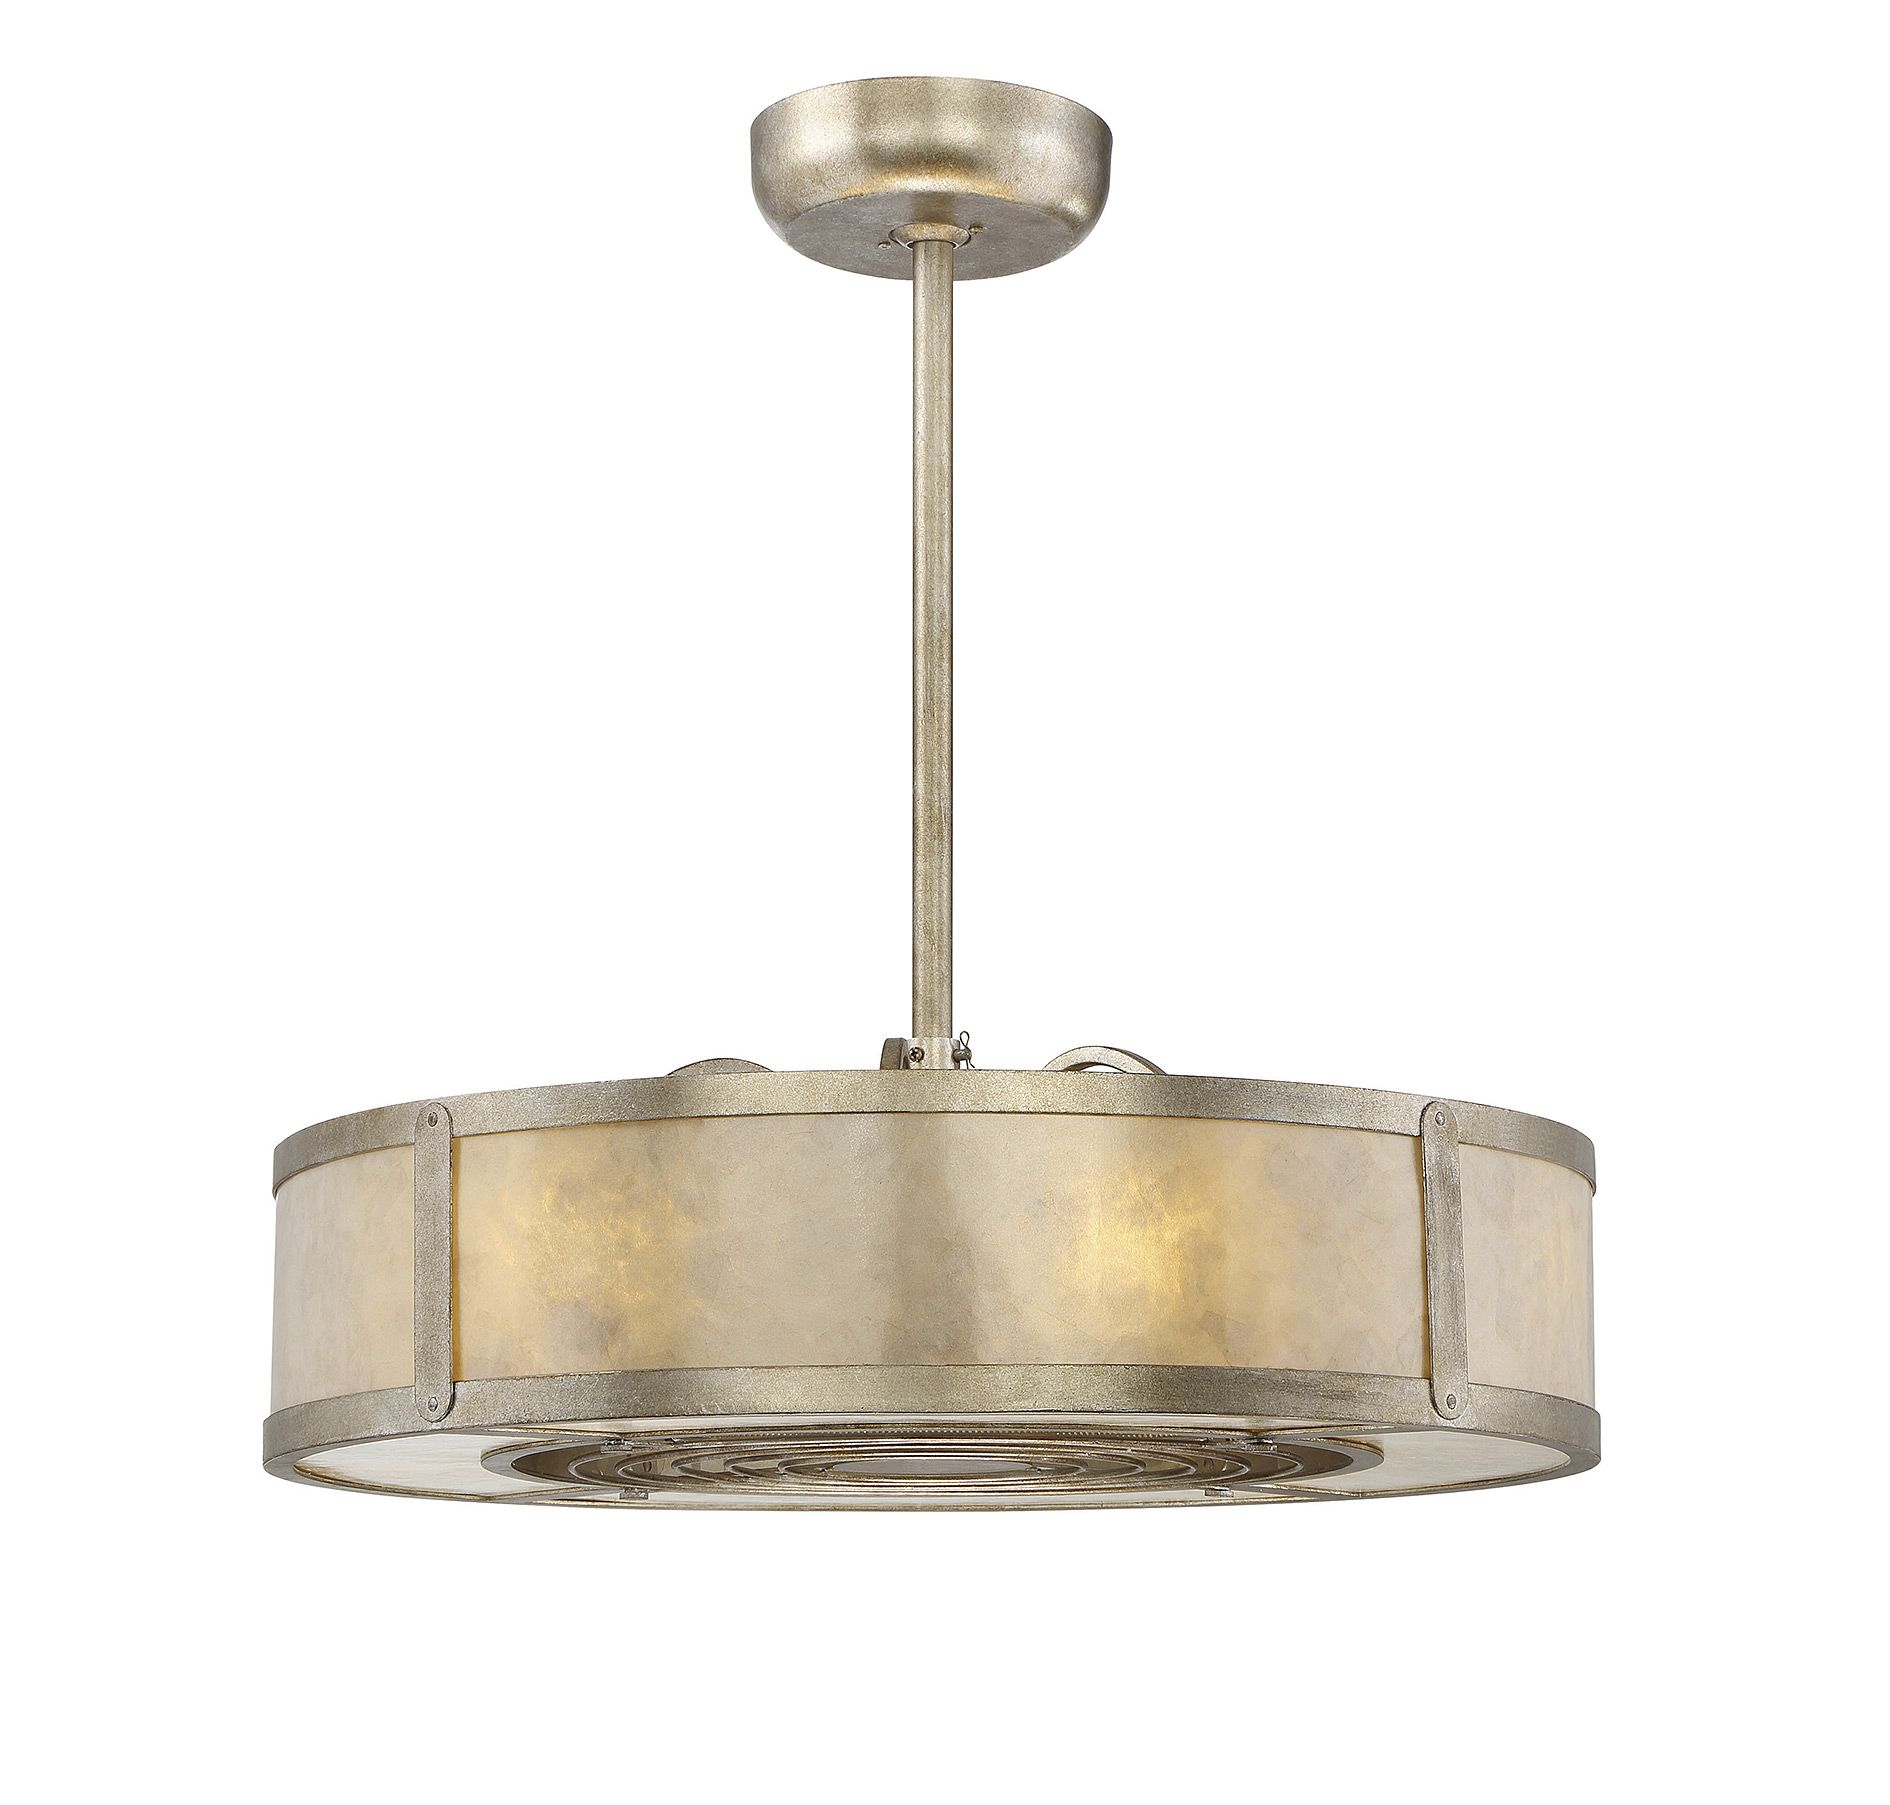 Vireo 26 air ionizing fan dlier ceiling fans products vireo from savoy house is designed to revolutionize the ceiling fan this fan dlier a savoy house exclusive combines the look of a stylish drum pendant aloadofball Gallery